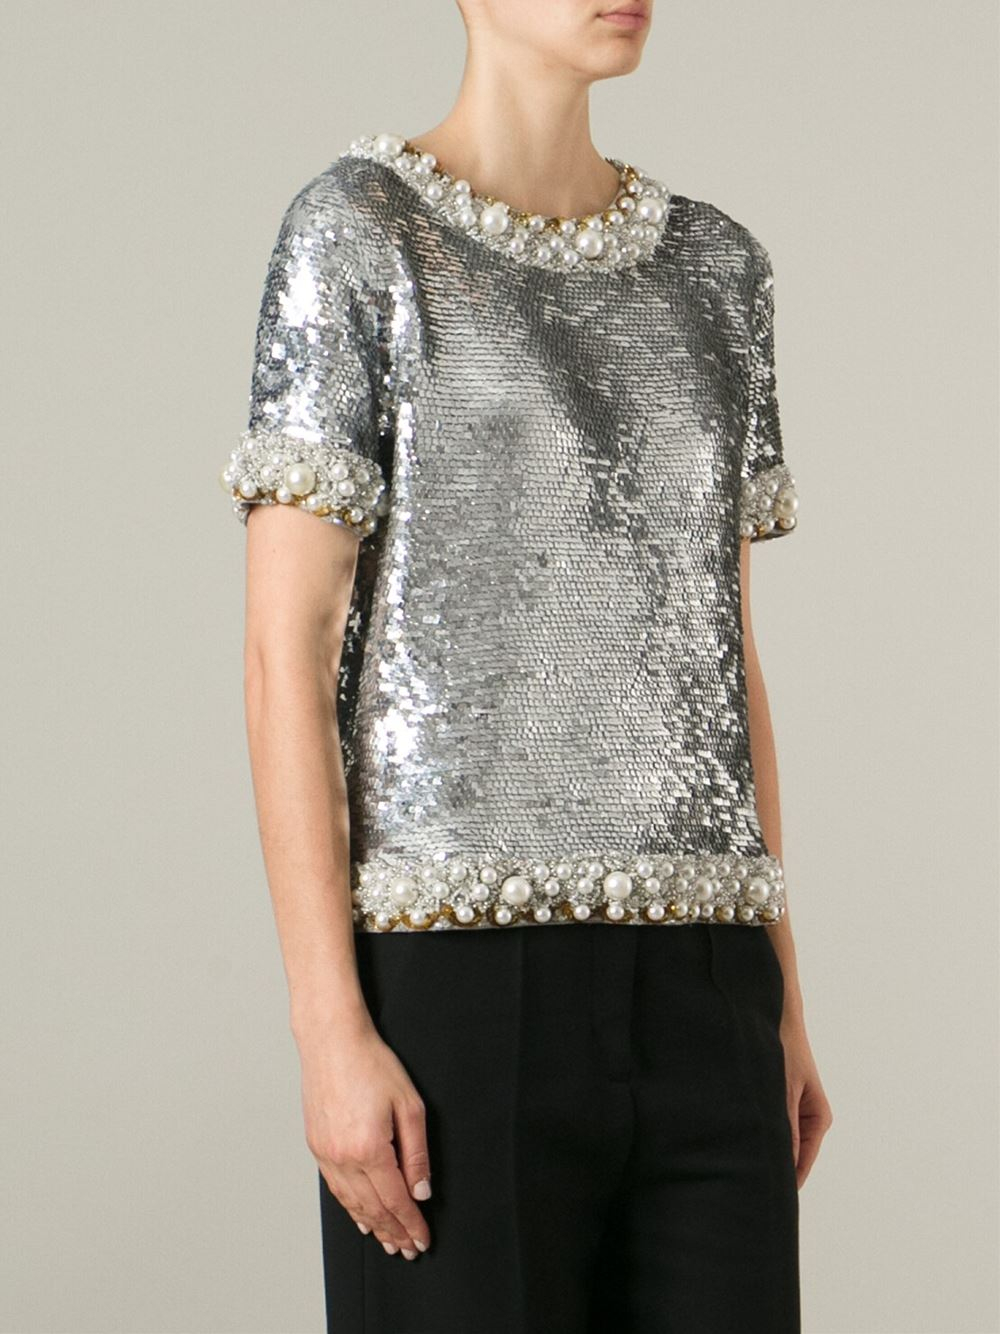 Lyst - Ashish Sequin Embellished Top in Metallic